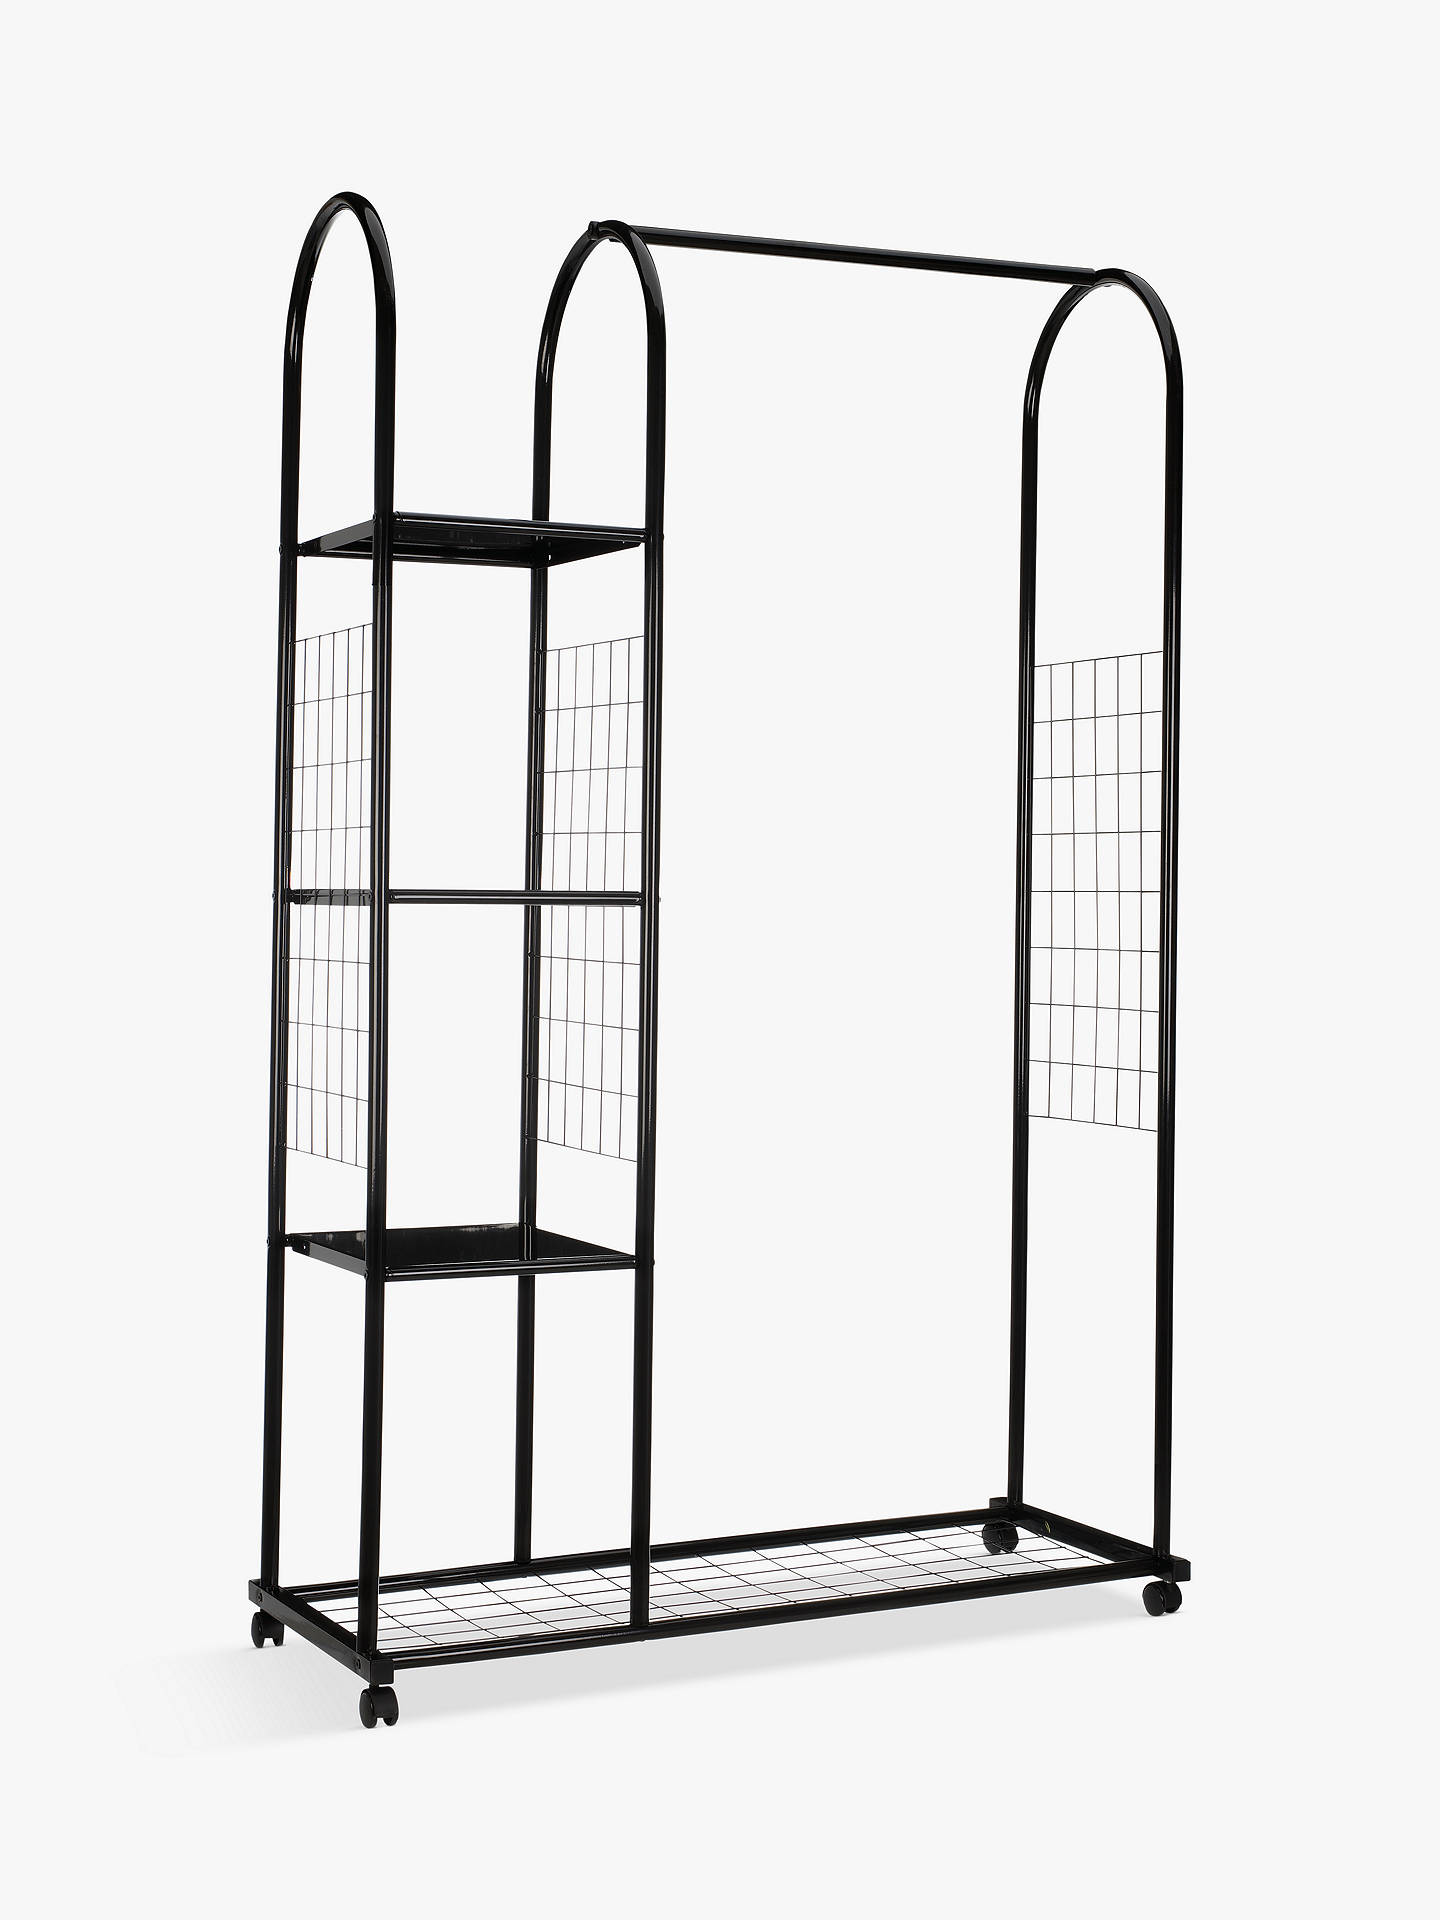 BuyJohn Lewis & Partners Clothes Rail with Shelf Unit, Black Online at johnlewis.com